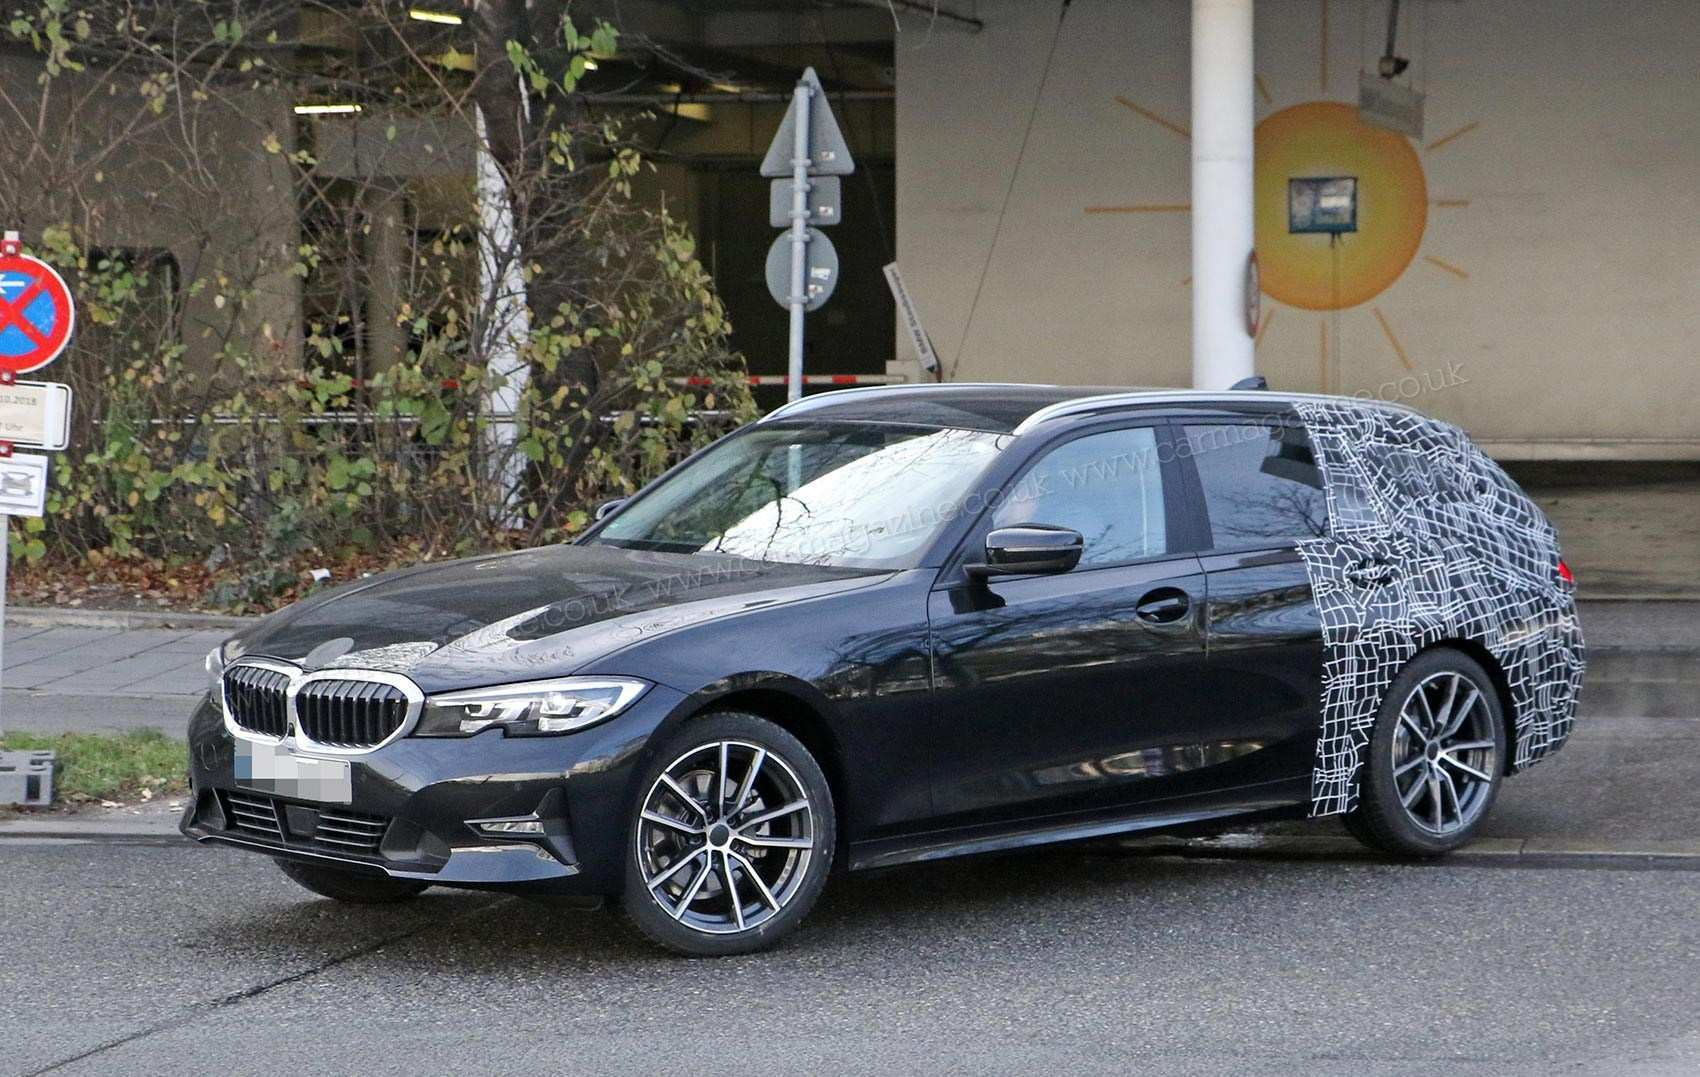 57 A 2019 Spy Shots BMW 3 Series Pictures